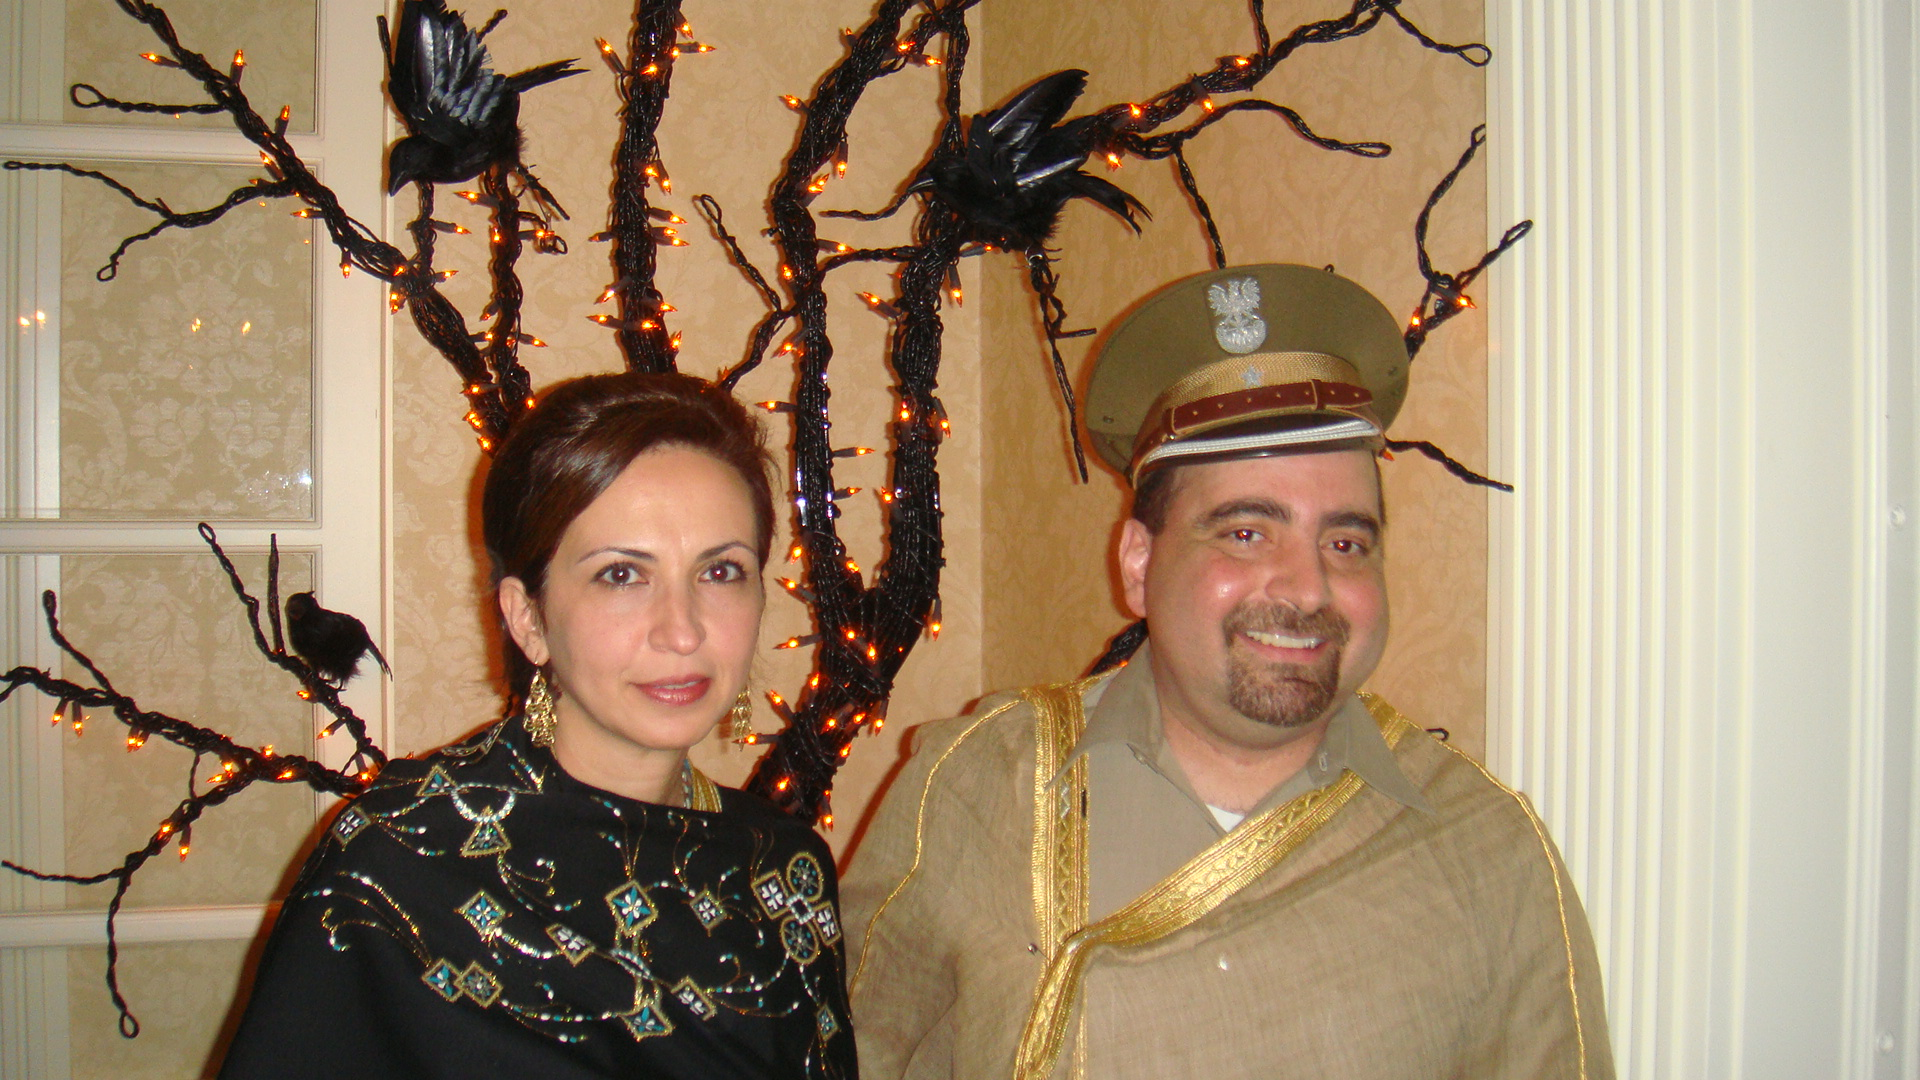 Laith's Halaween Oct 29,2011 010.jpg